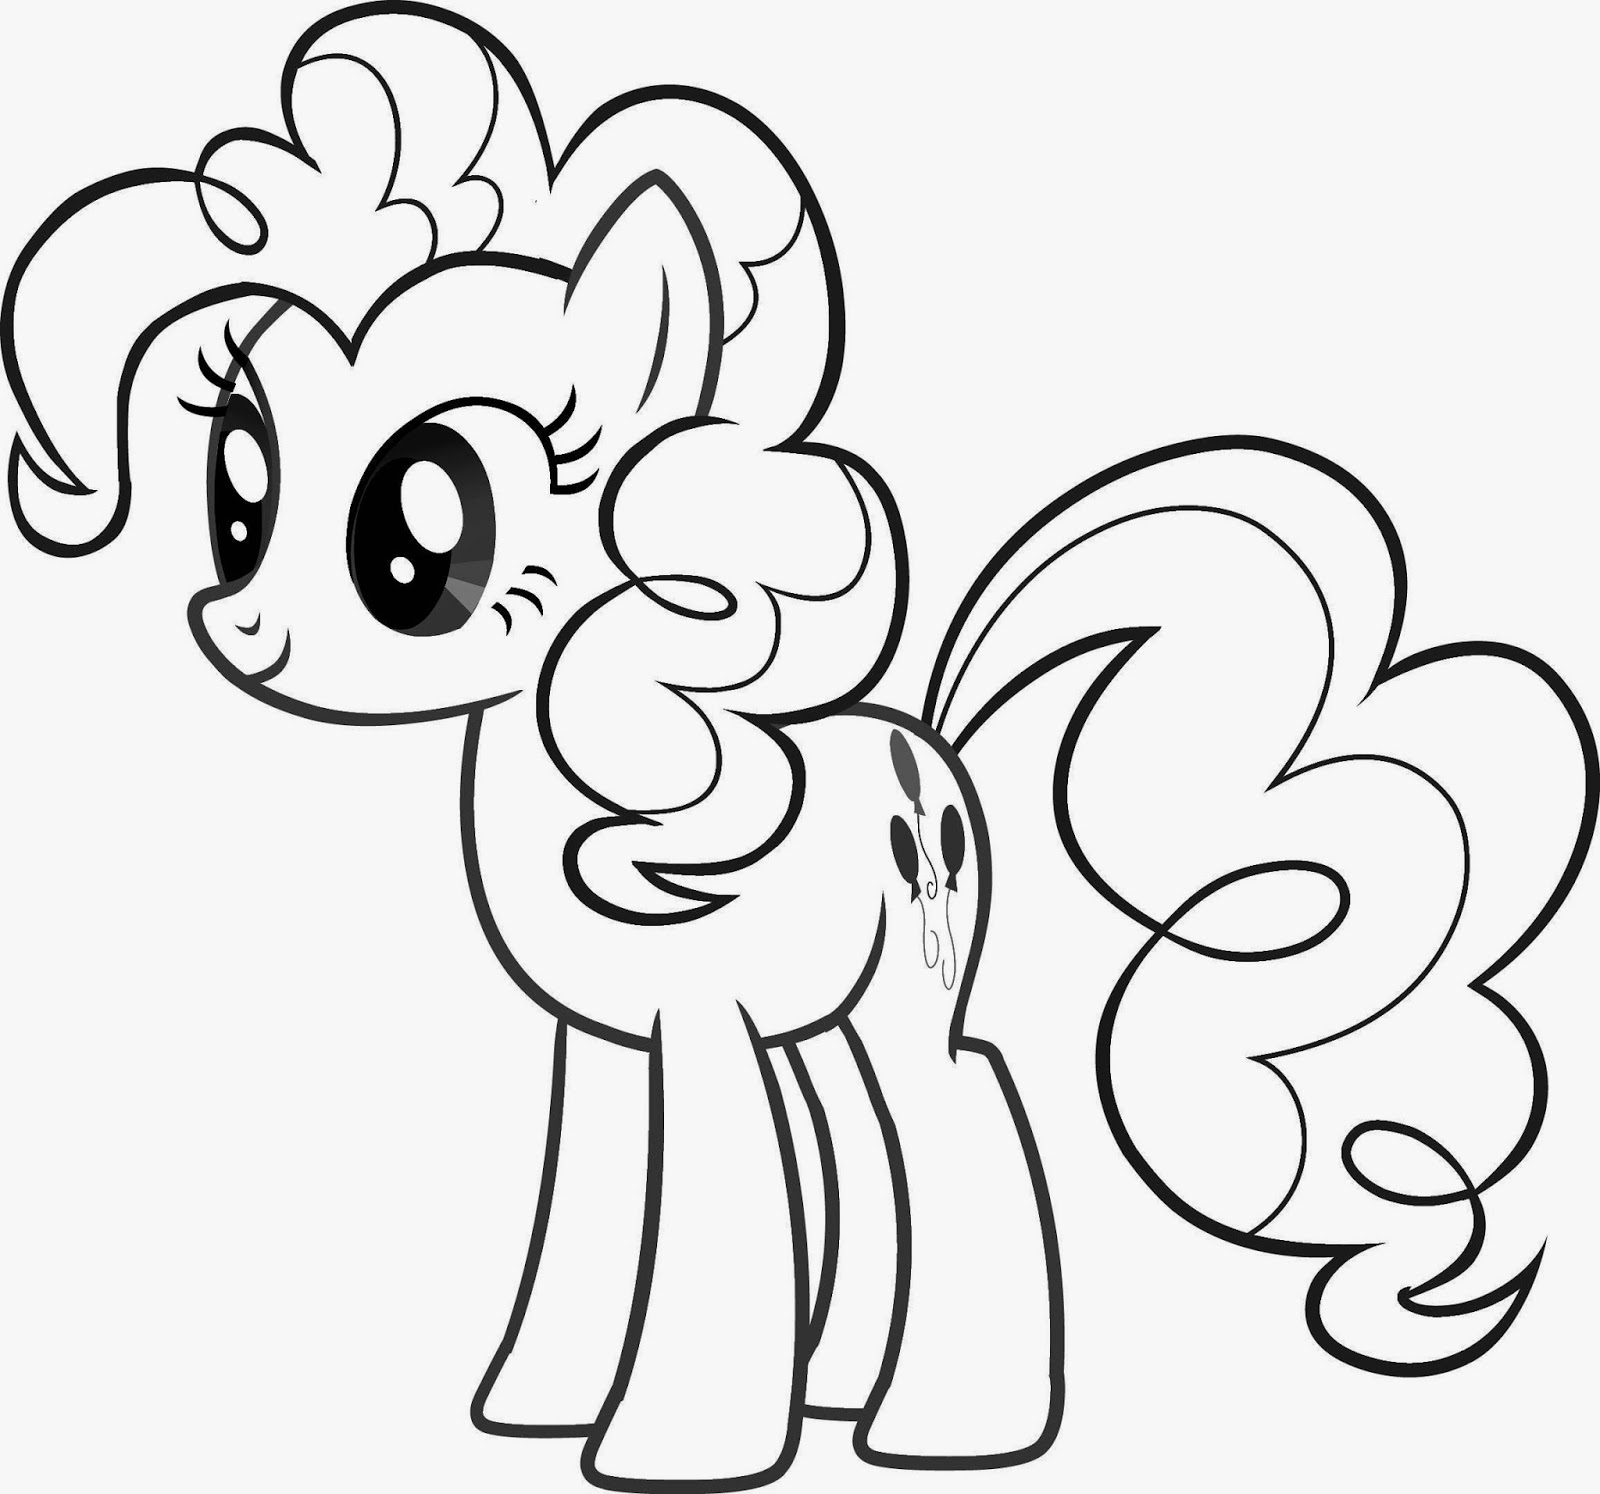 unicorn pictures for coloring unicorn coloring pages coloring unicorn pictures for